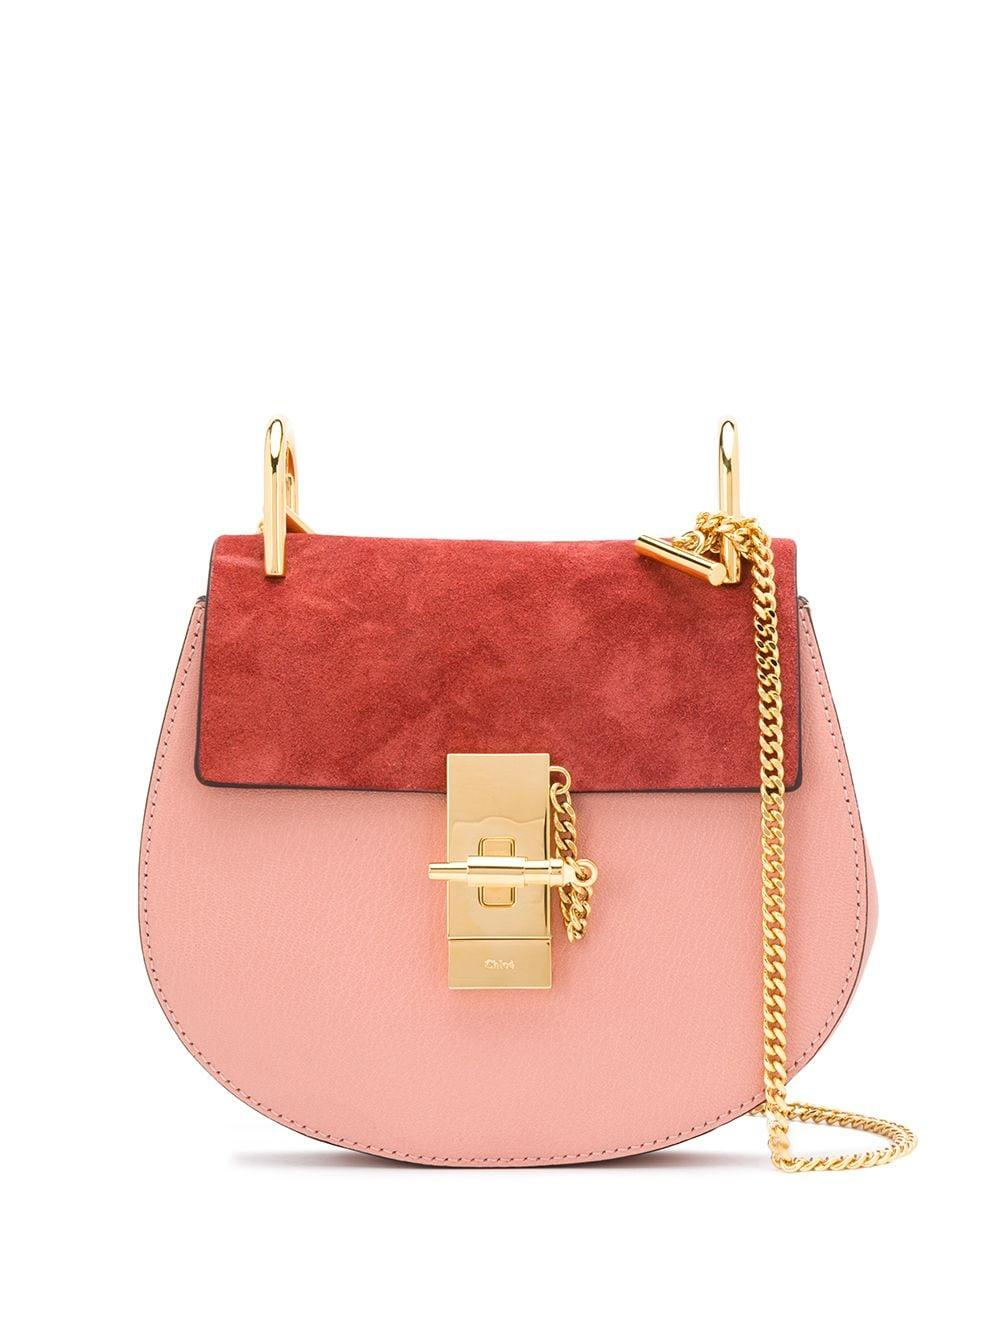 Drew Bi- Color Bag With Chain Strap Item # CHC20AS032D066L5